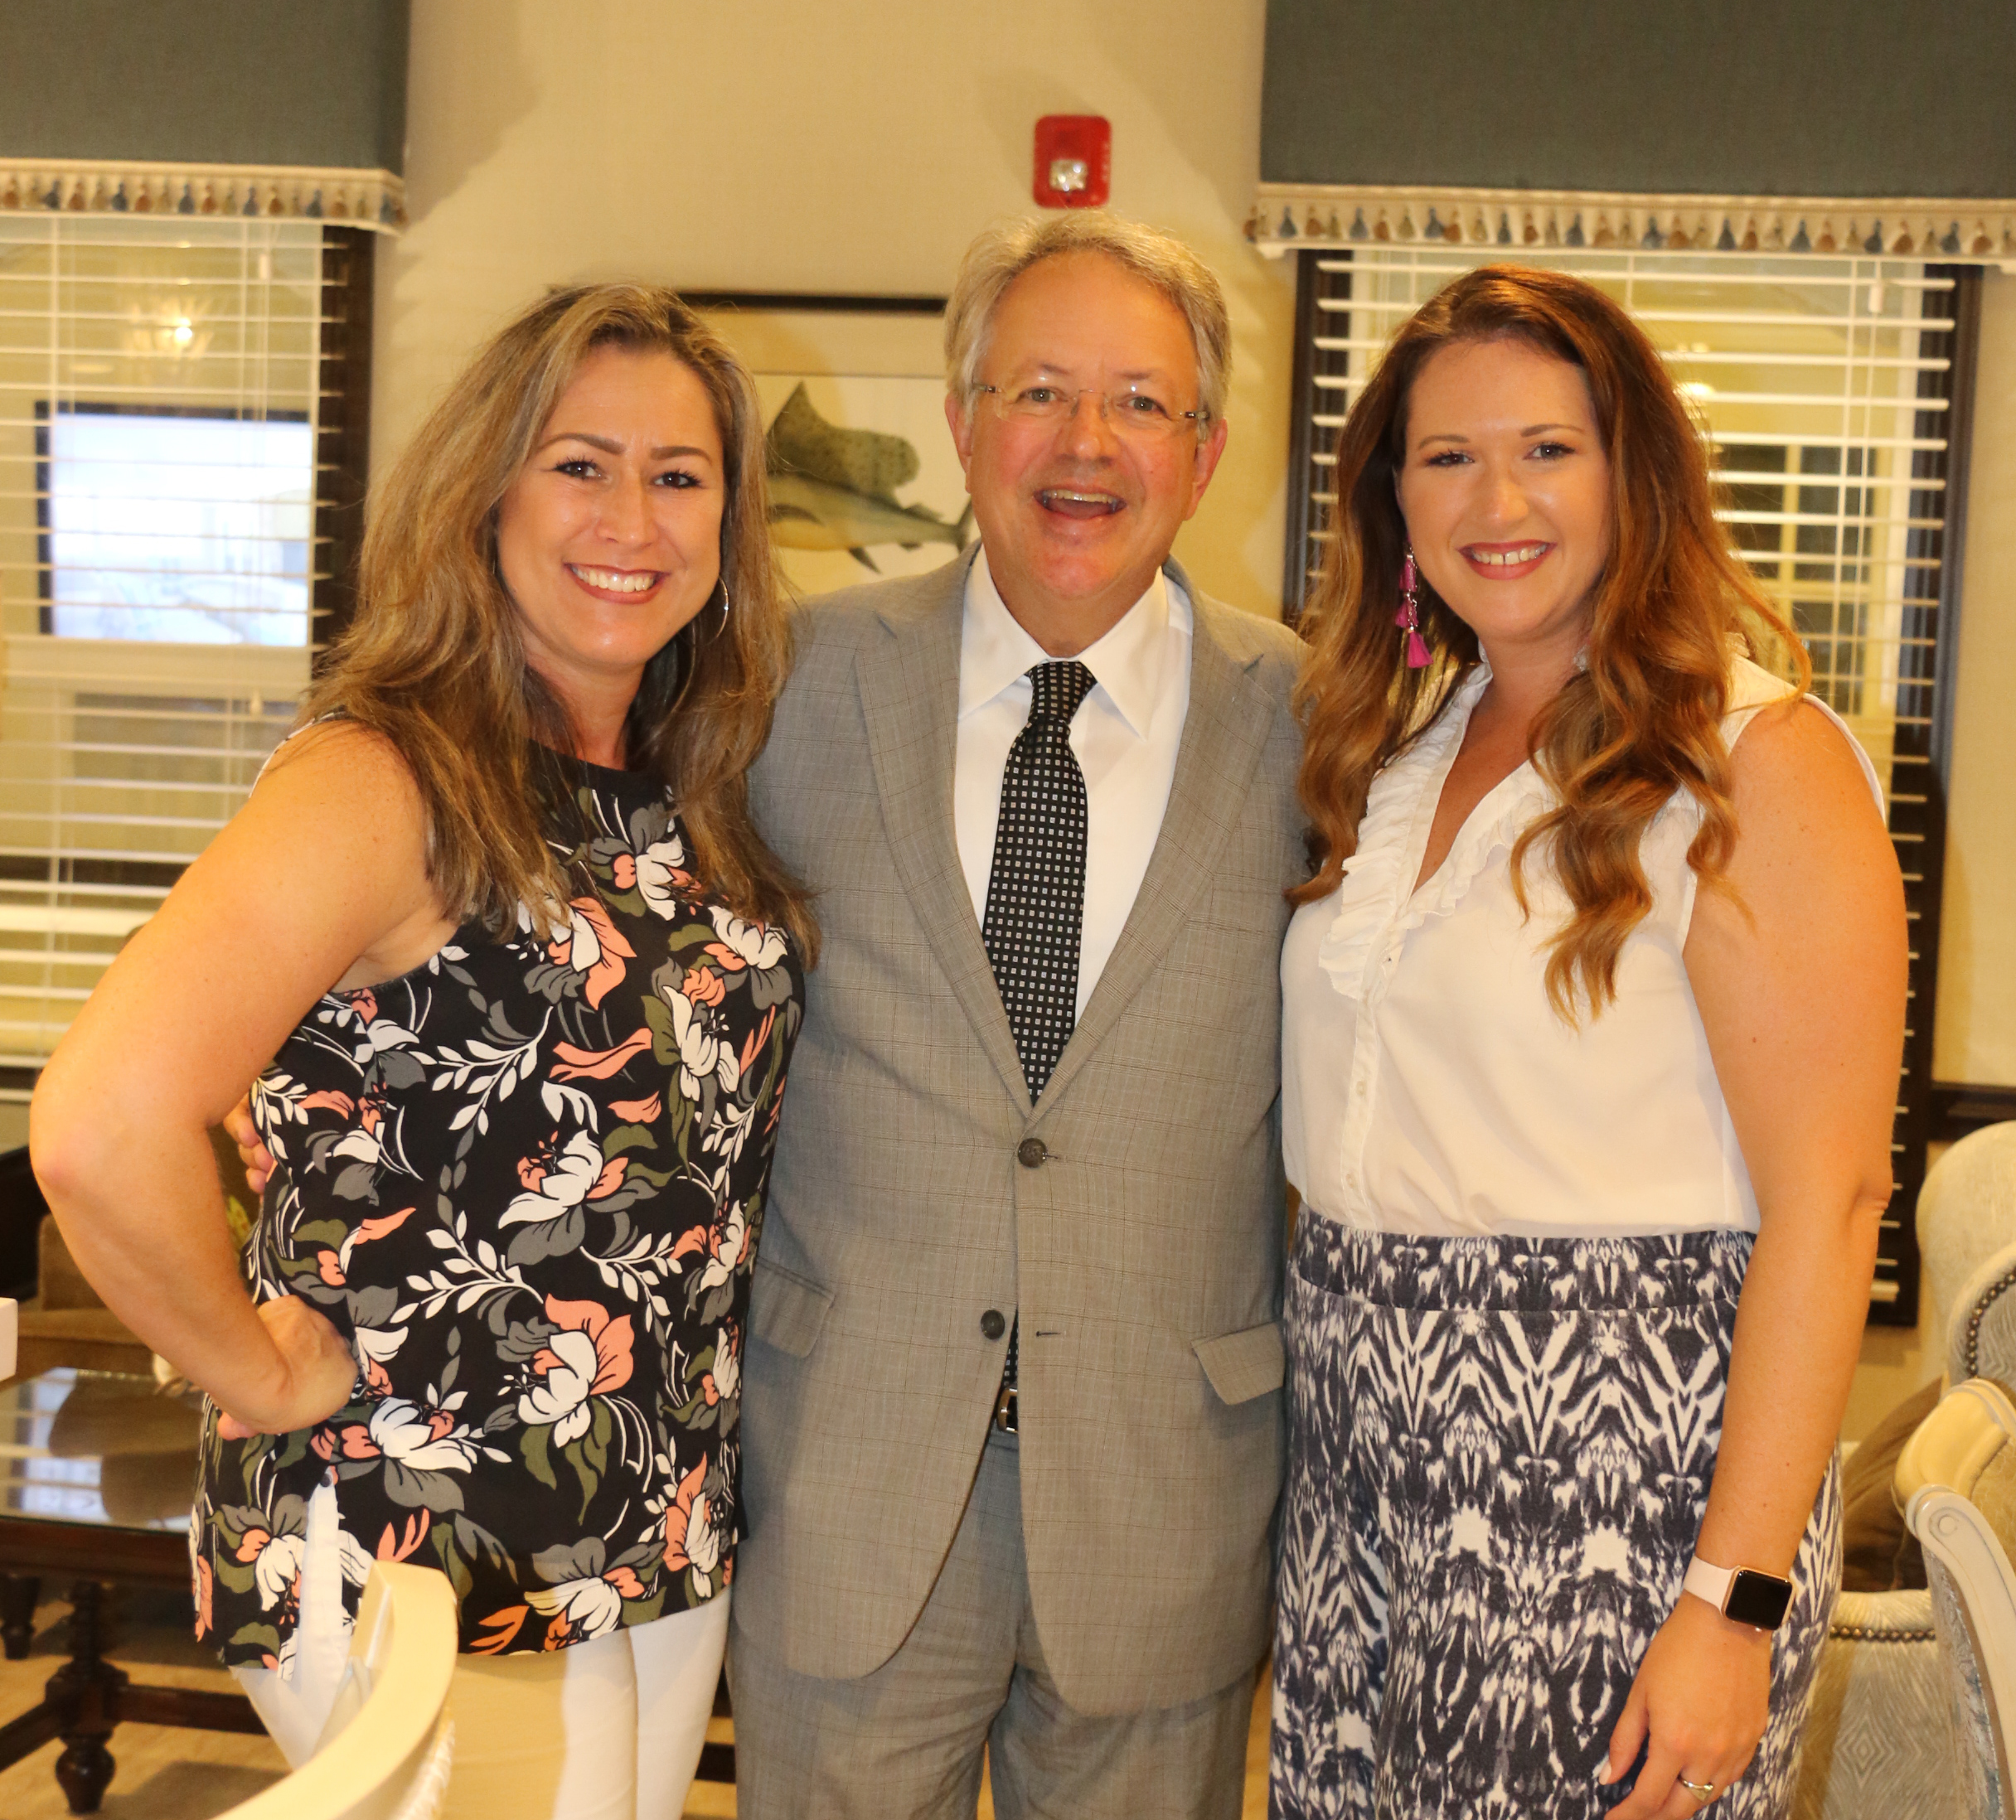 Heather Swan and Melanie Lawrimore pose with Charleston Mayor John Tecklenburg, who performed songs on the piano for the crowd.